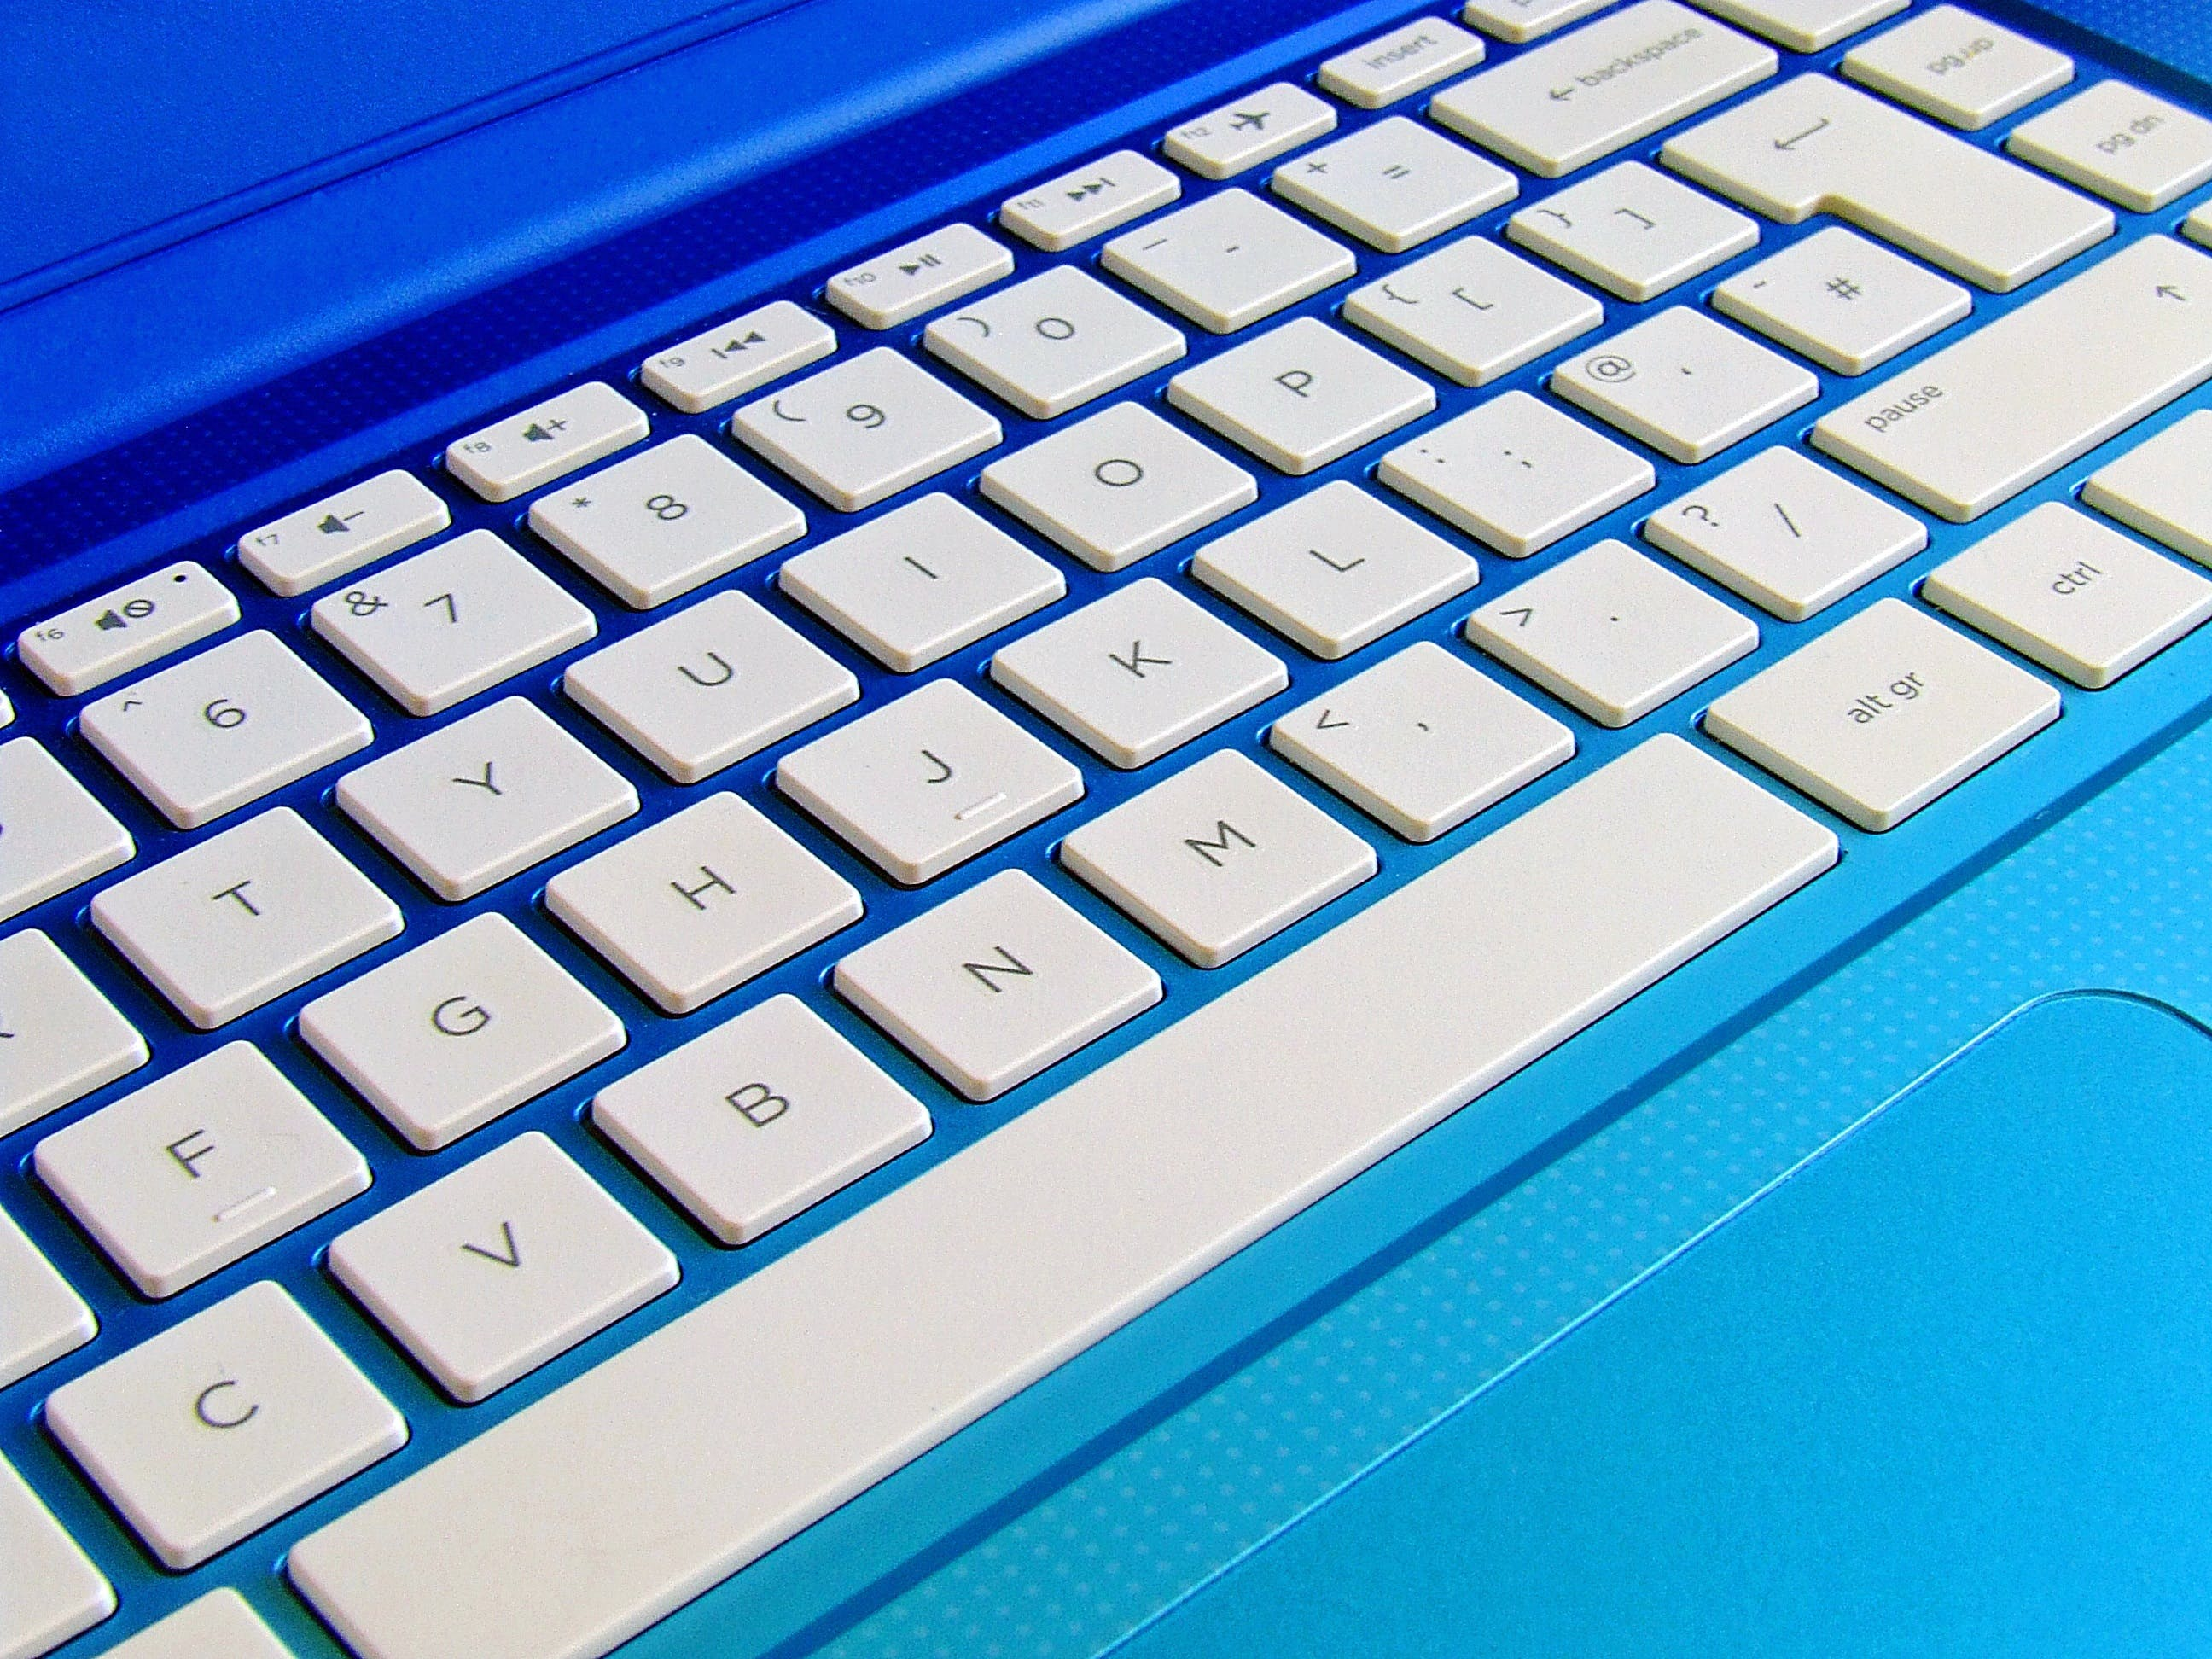 Free stock photo of blue, laptop, technology, computer